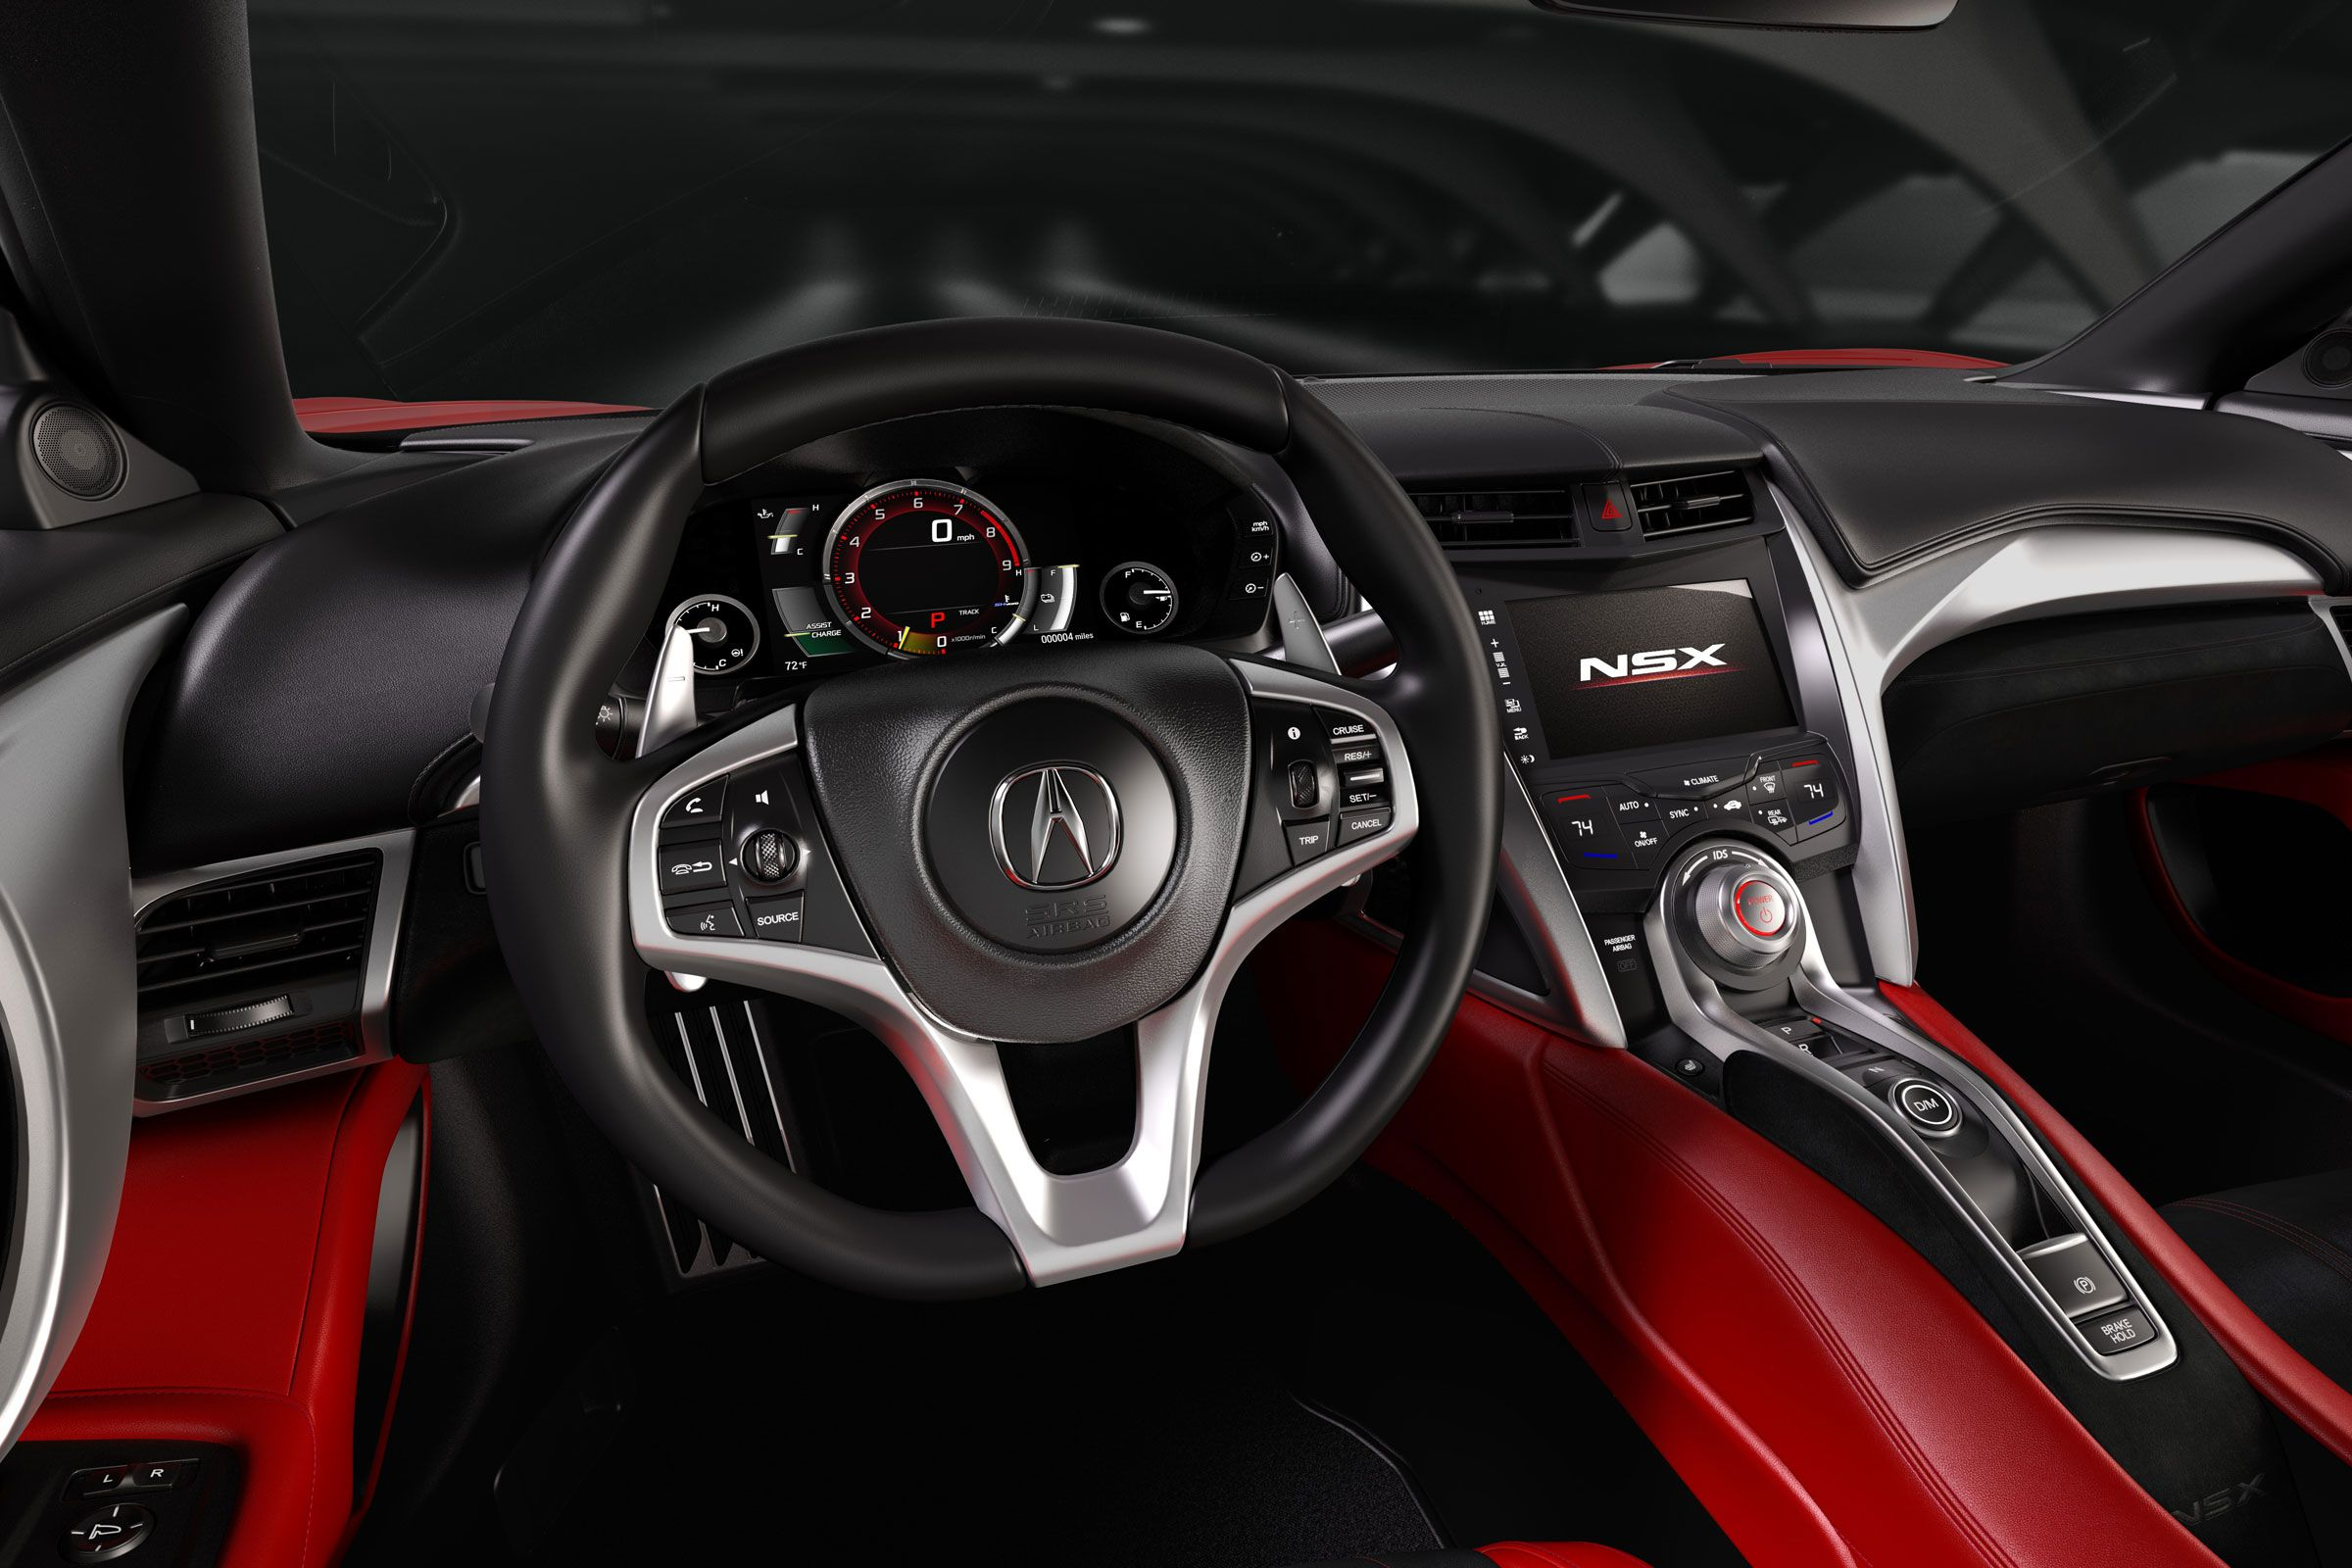 Next generation acura nsx interior image 2015 naias live brand new acura honda nsx unveiled in production form view high resolution image photo